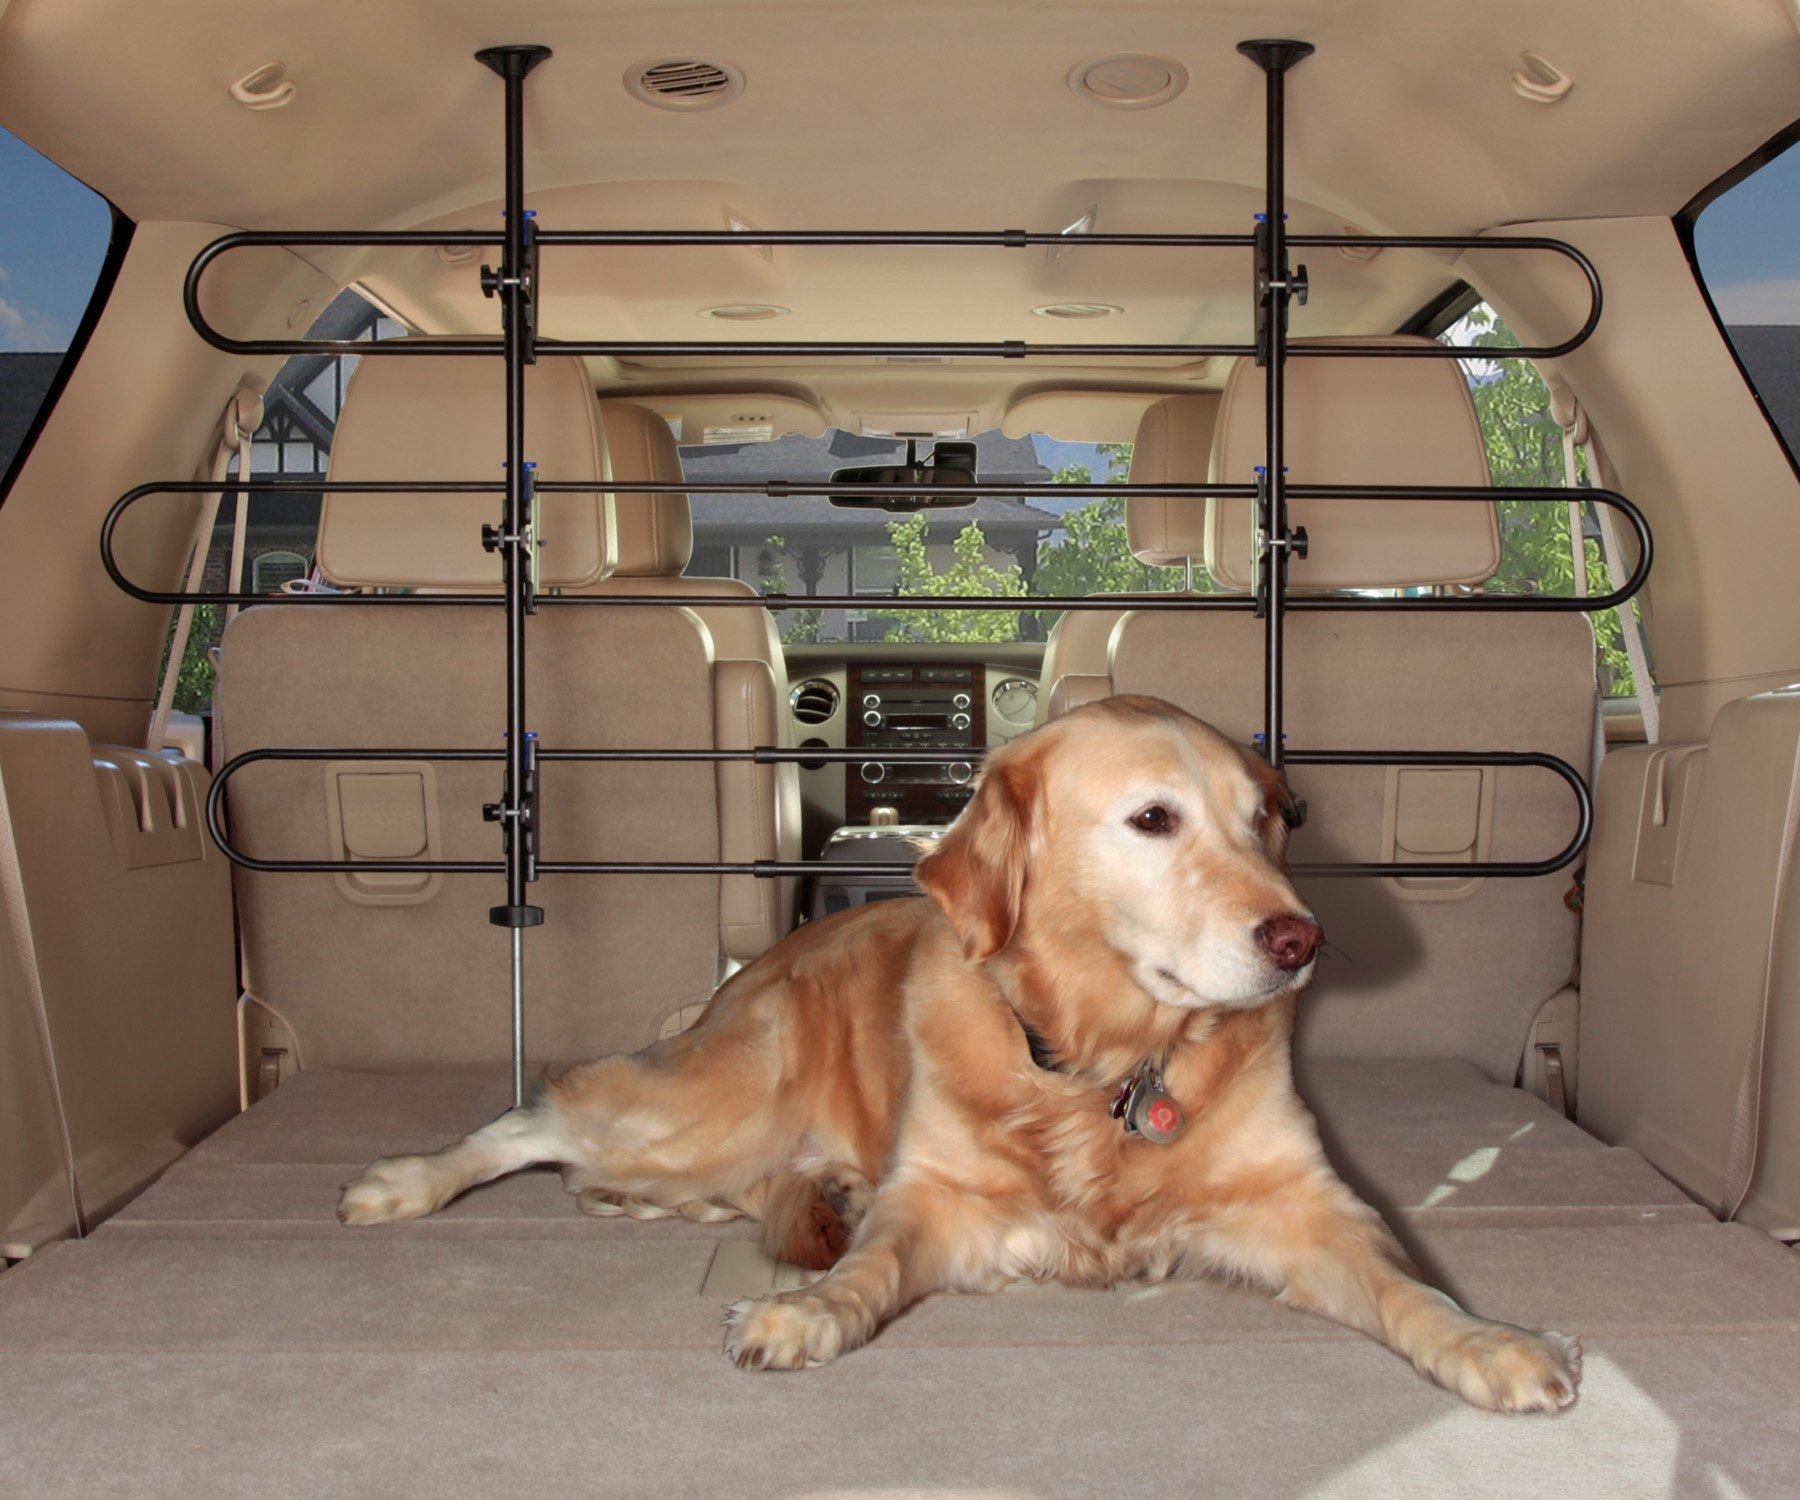 PetSafe Solvit Tubular Car Pet Barrier, Adjustable Vehicle Pet Barrier for Cars and SUVs, Adjusts from 32-49 in. H x 33- 57 in. W by PetSafe